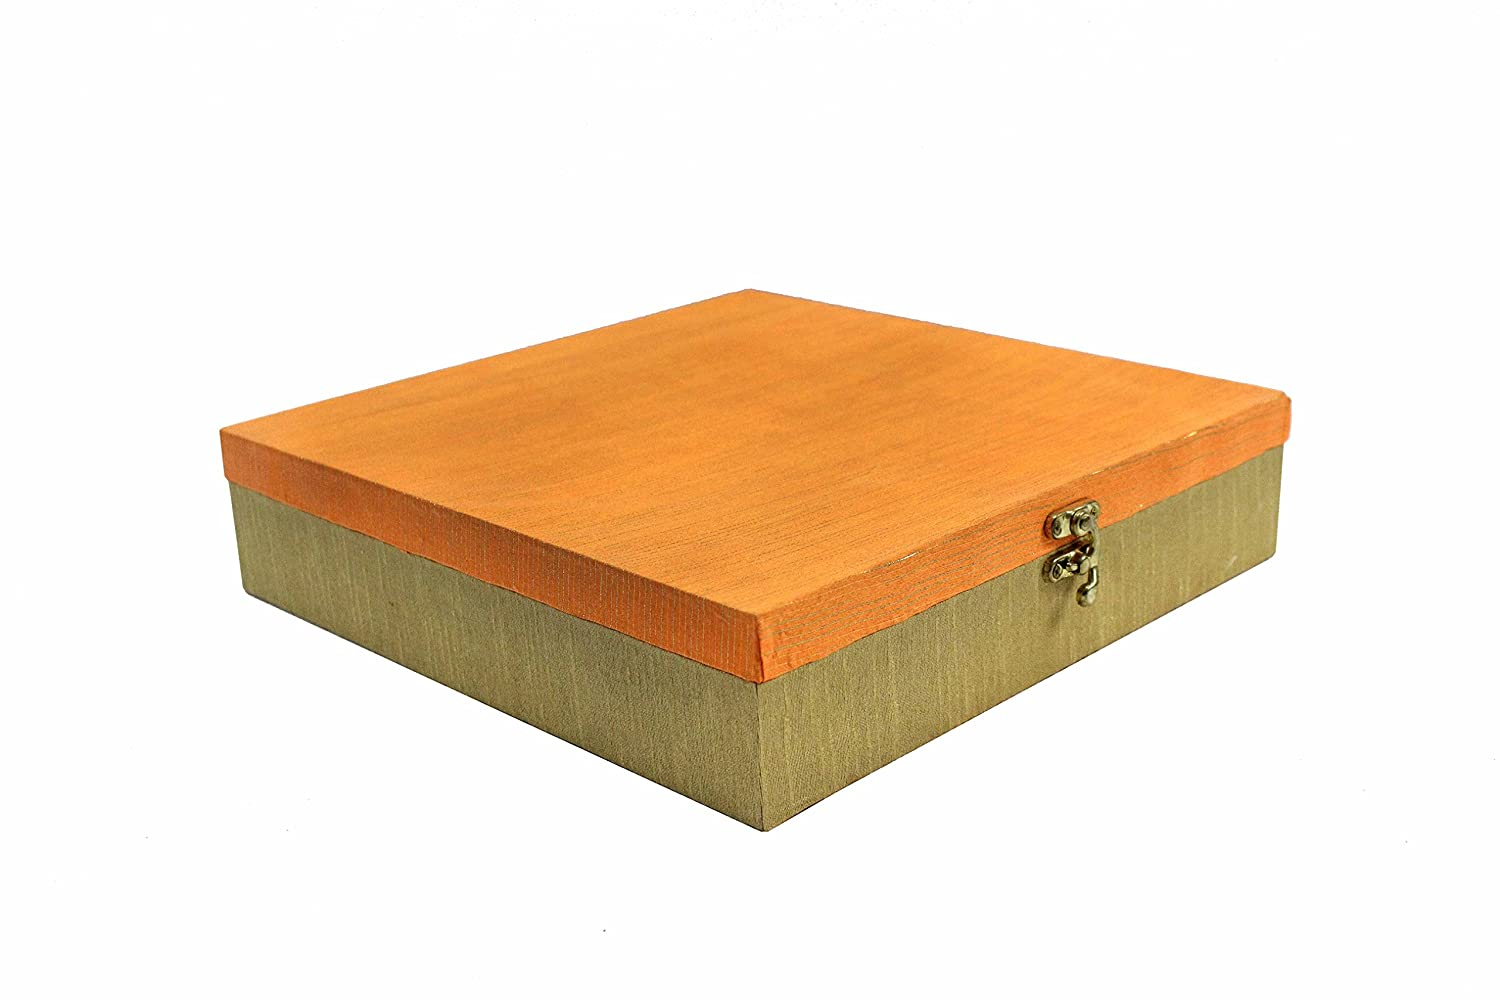 Buy Line N Curves Orange Empty Sweet Box In Velvet And Satin Fabric Empty Gift Box Decorative Platter Dry Fruit Box Wedding Gifting Pack Of 3 Boxes Online At Low Prices In